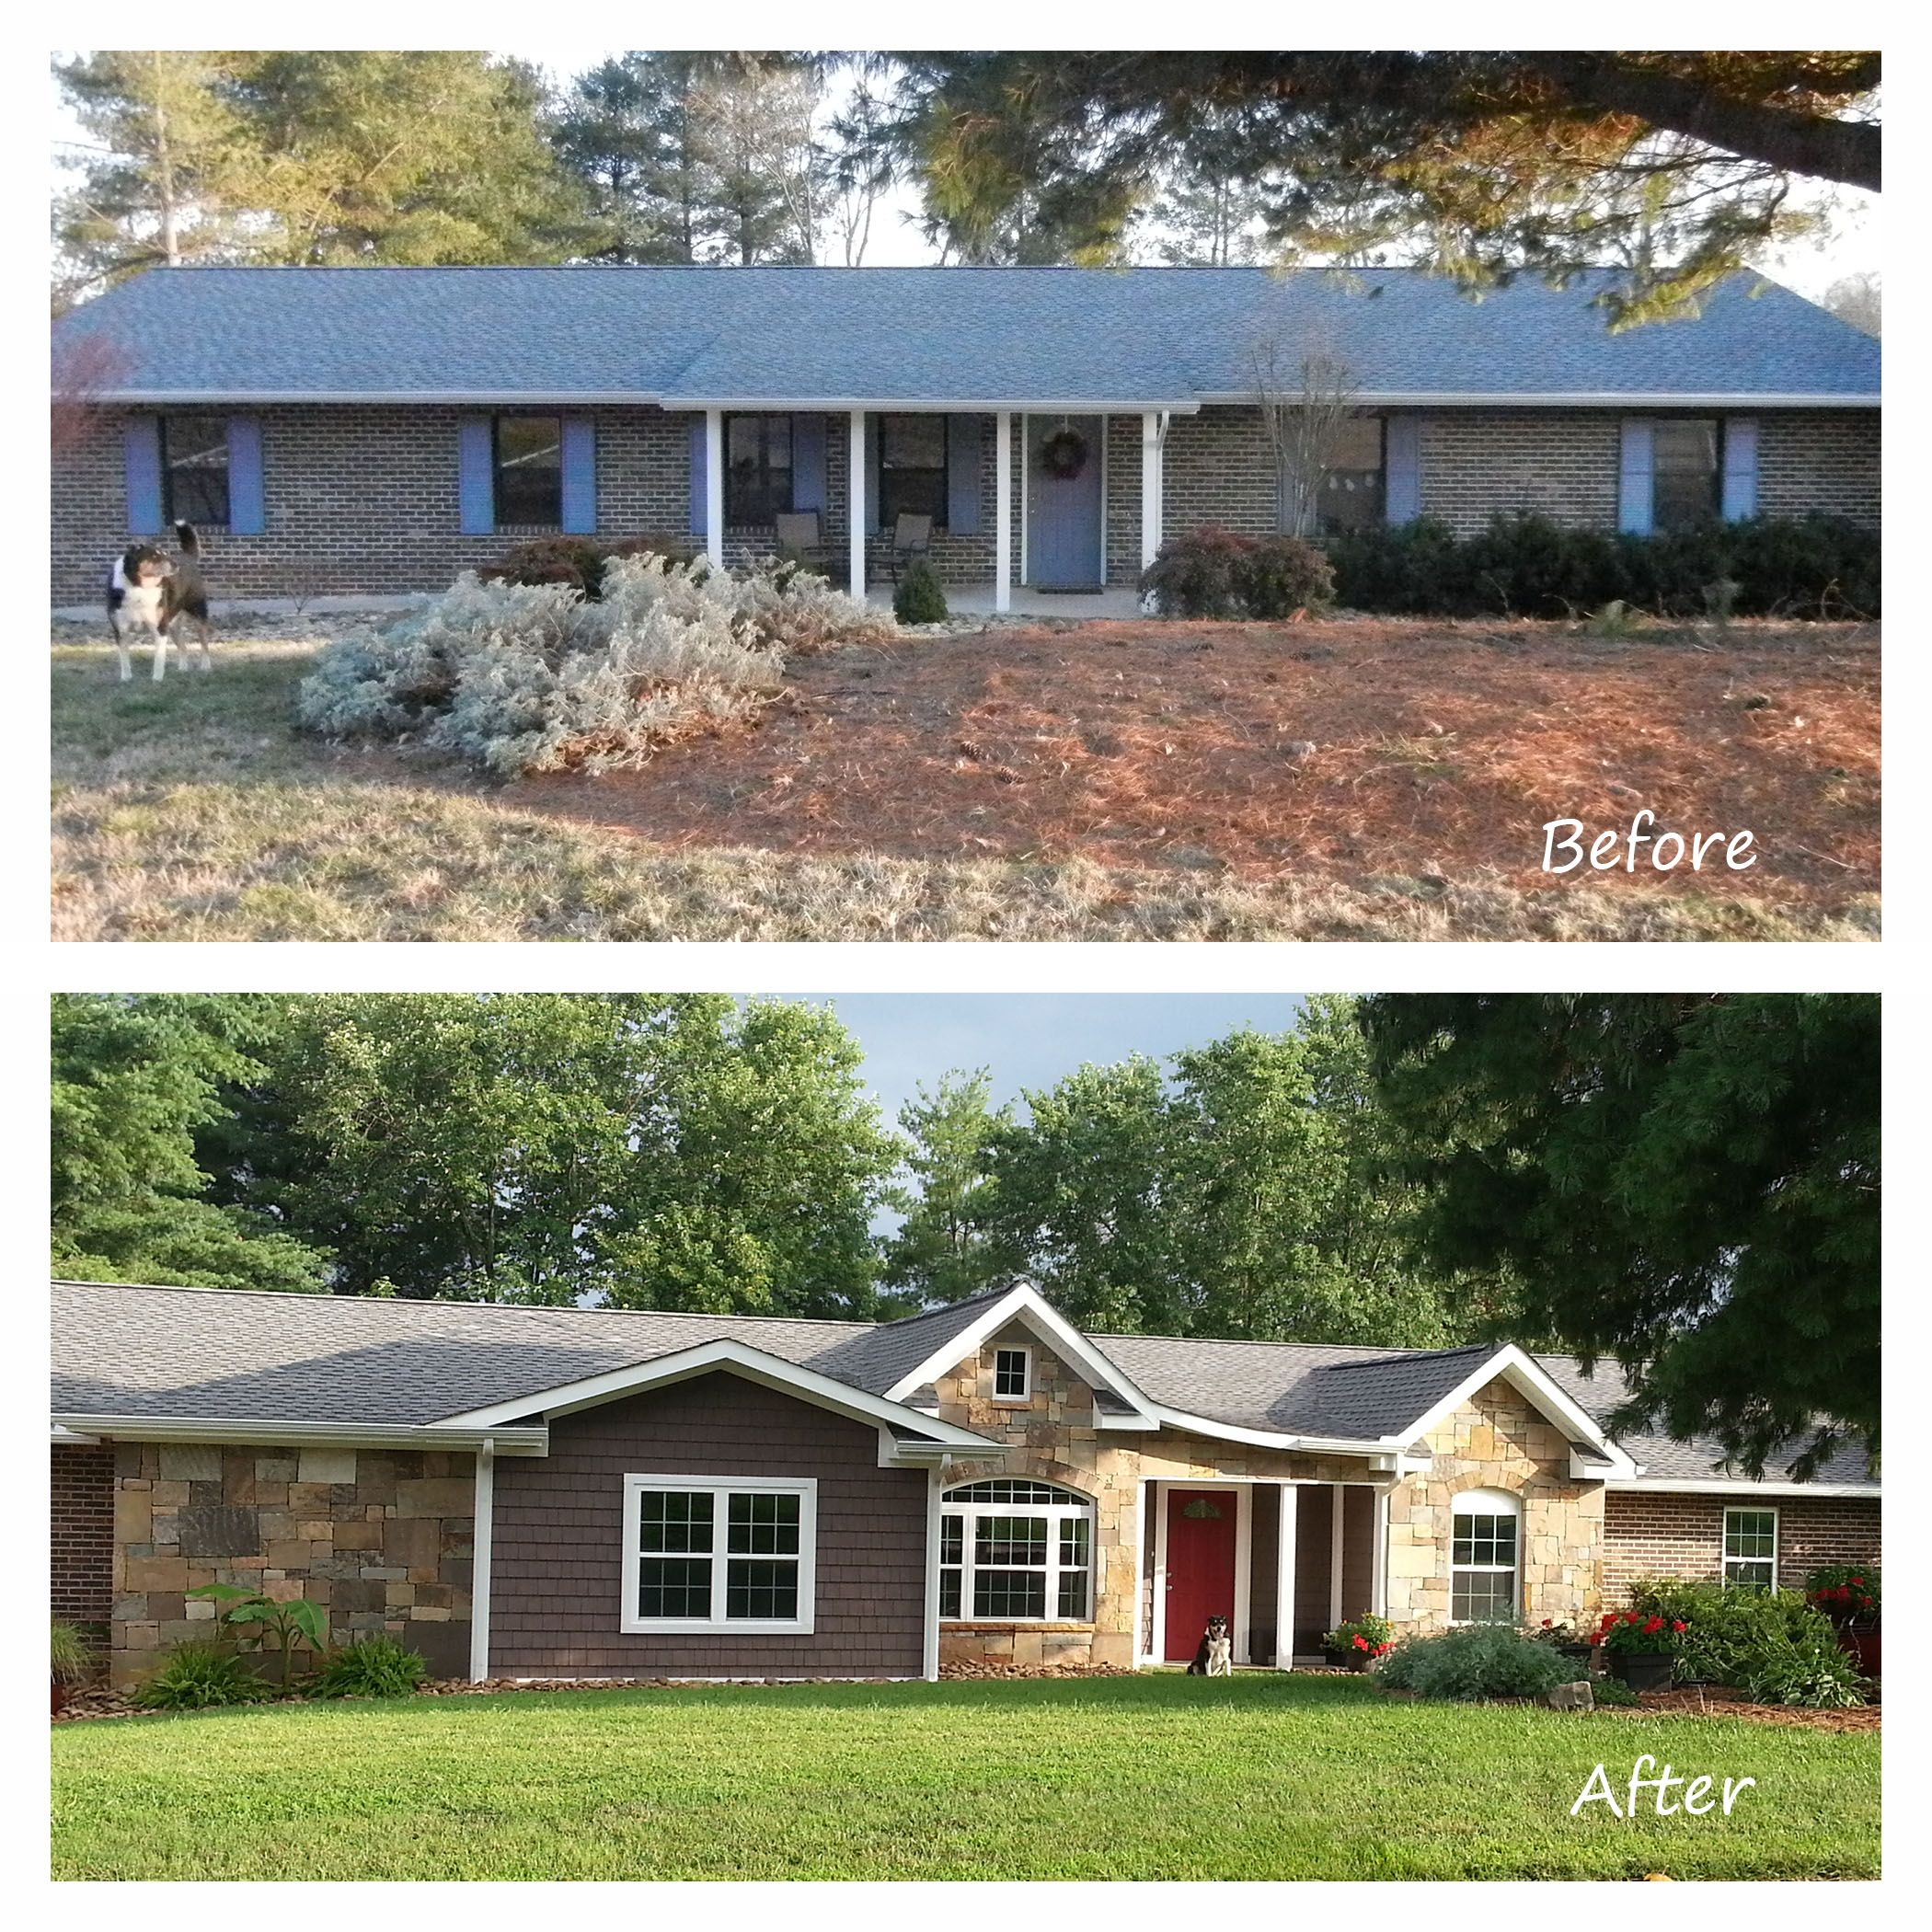 Before and after exterior renovation ranch house remodel for Before and after exterior home makeovers